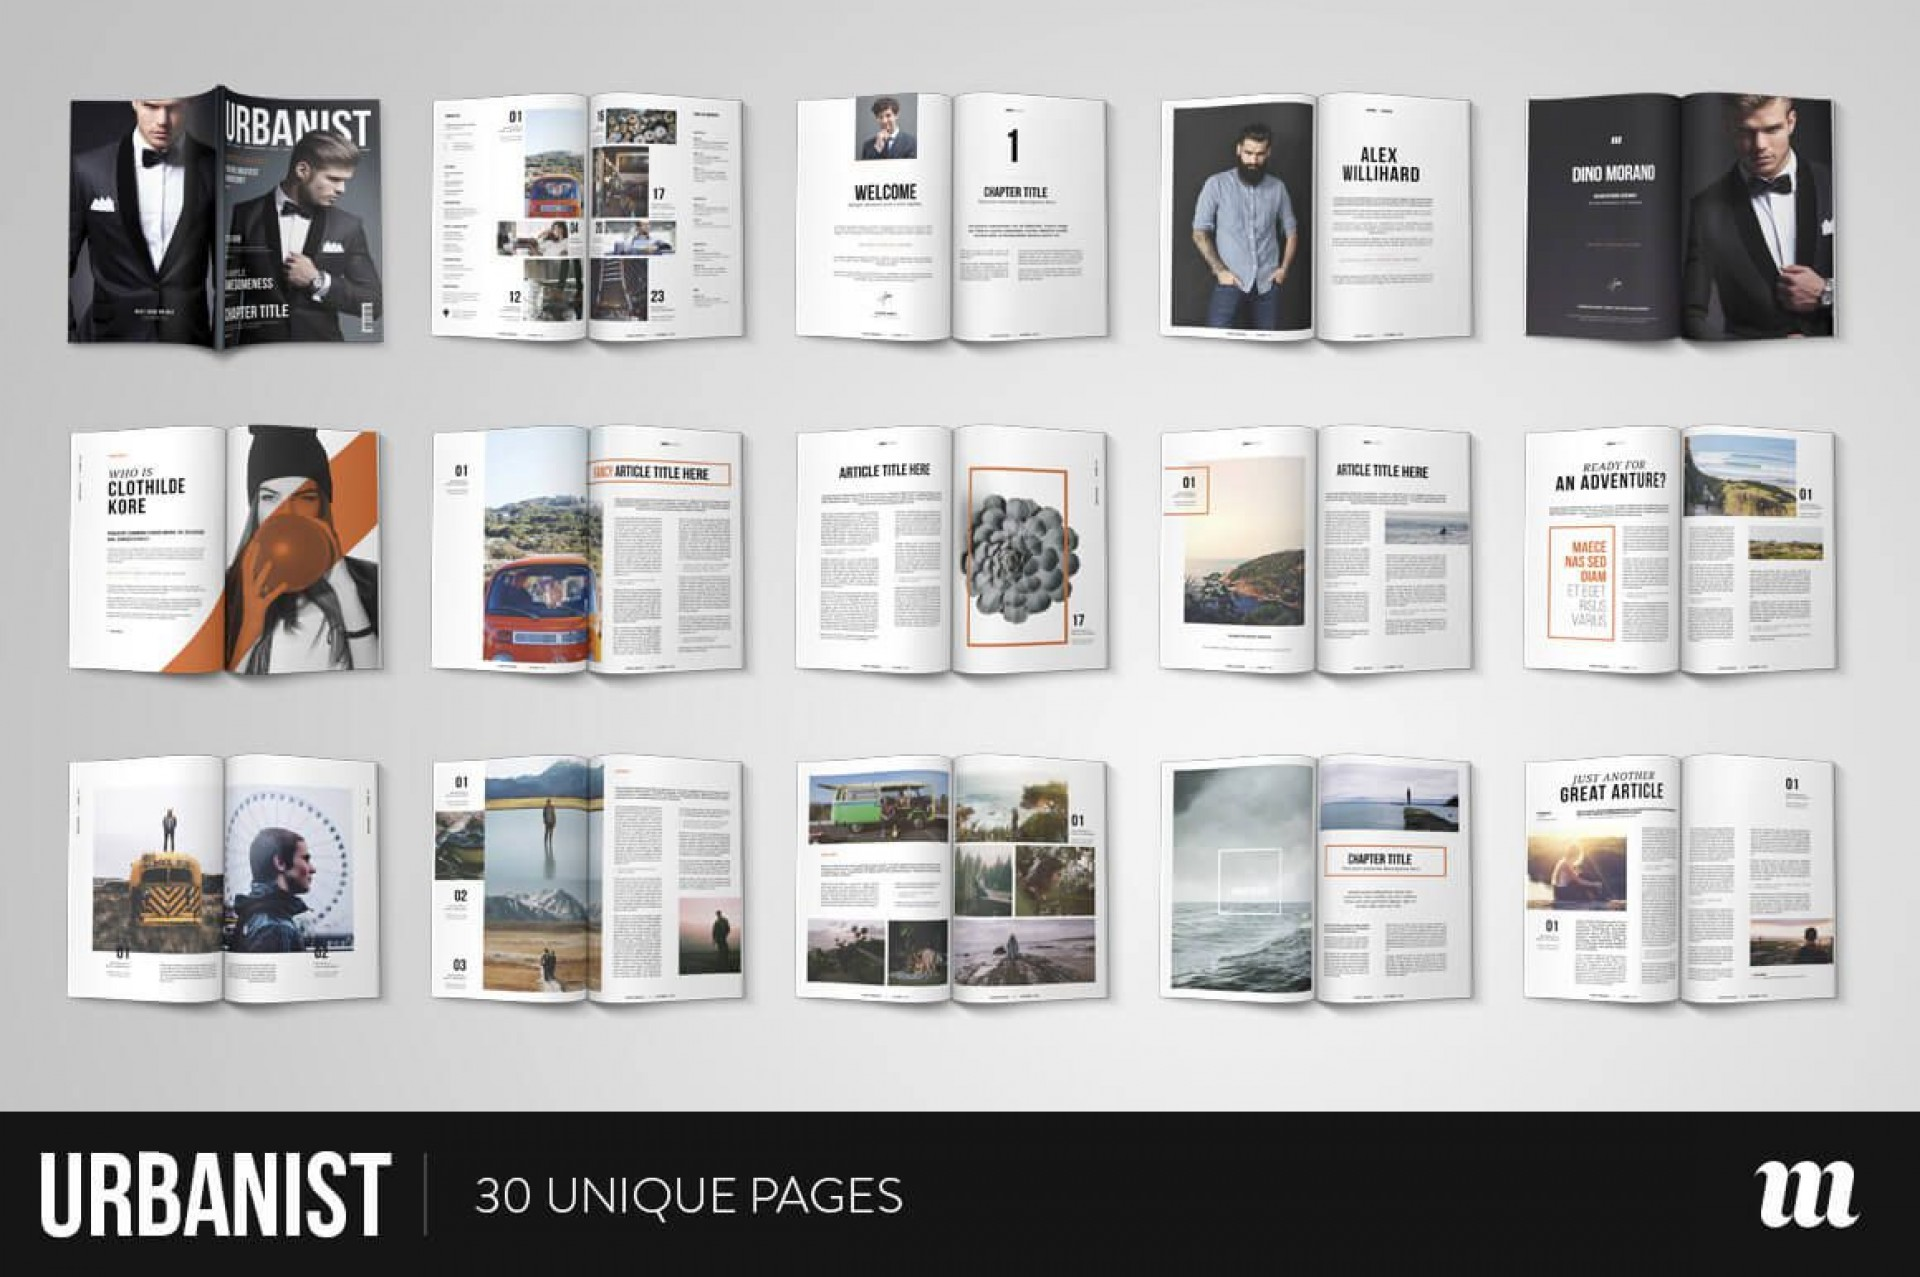 010 Best Free Magazine Layout Template High Resolution  Templates For Word Microsoft Powerpoint1920